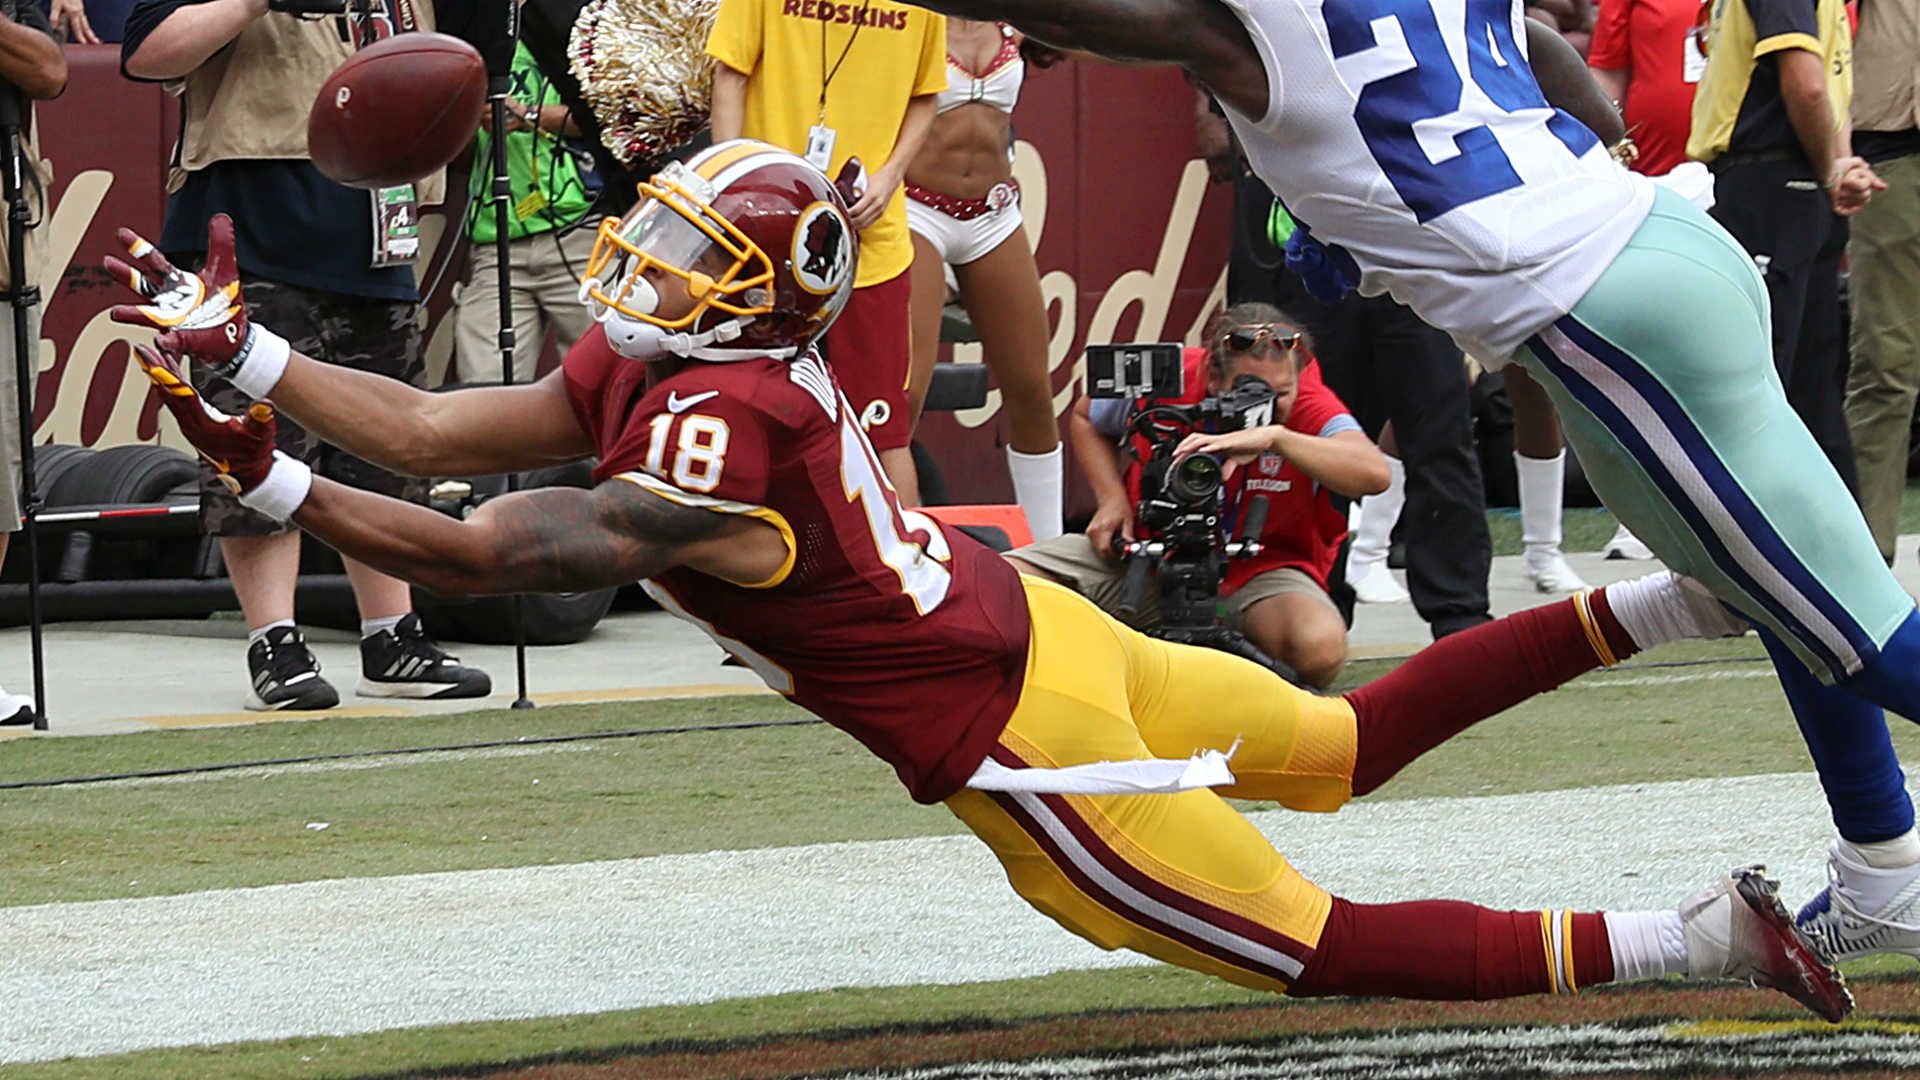 Josh-Doctson-redskins-053117-getty-ftr